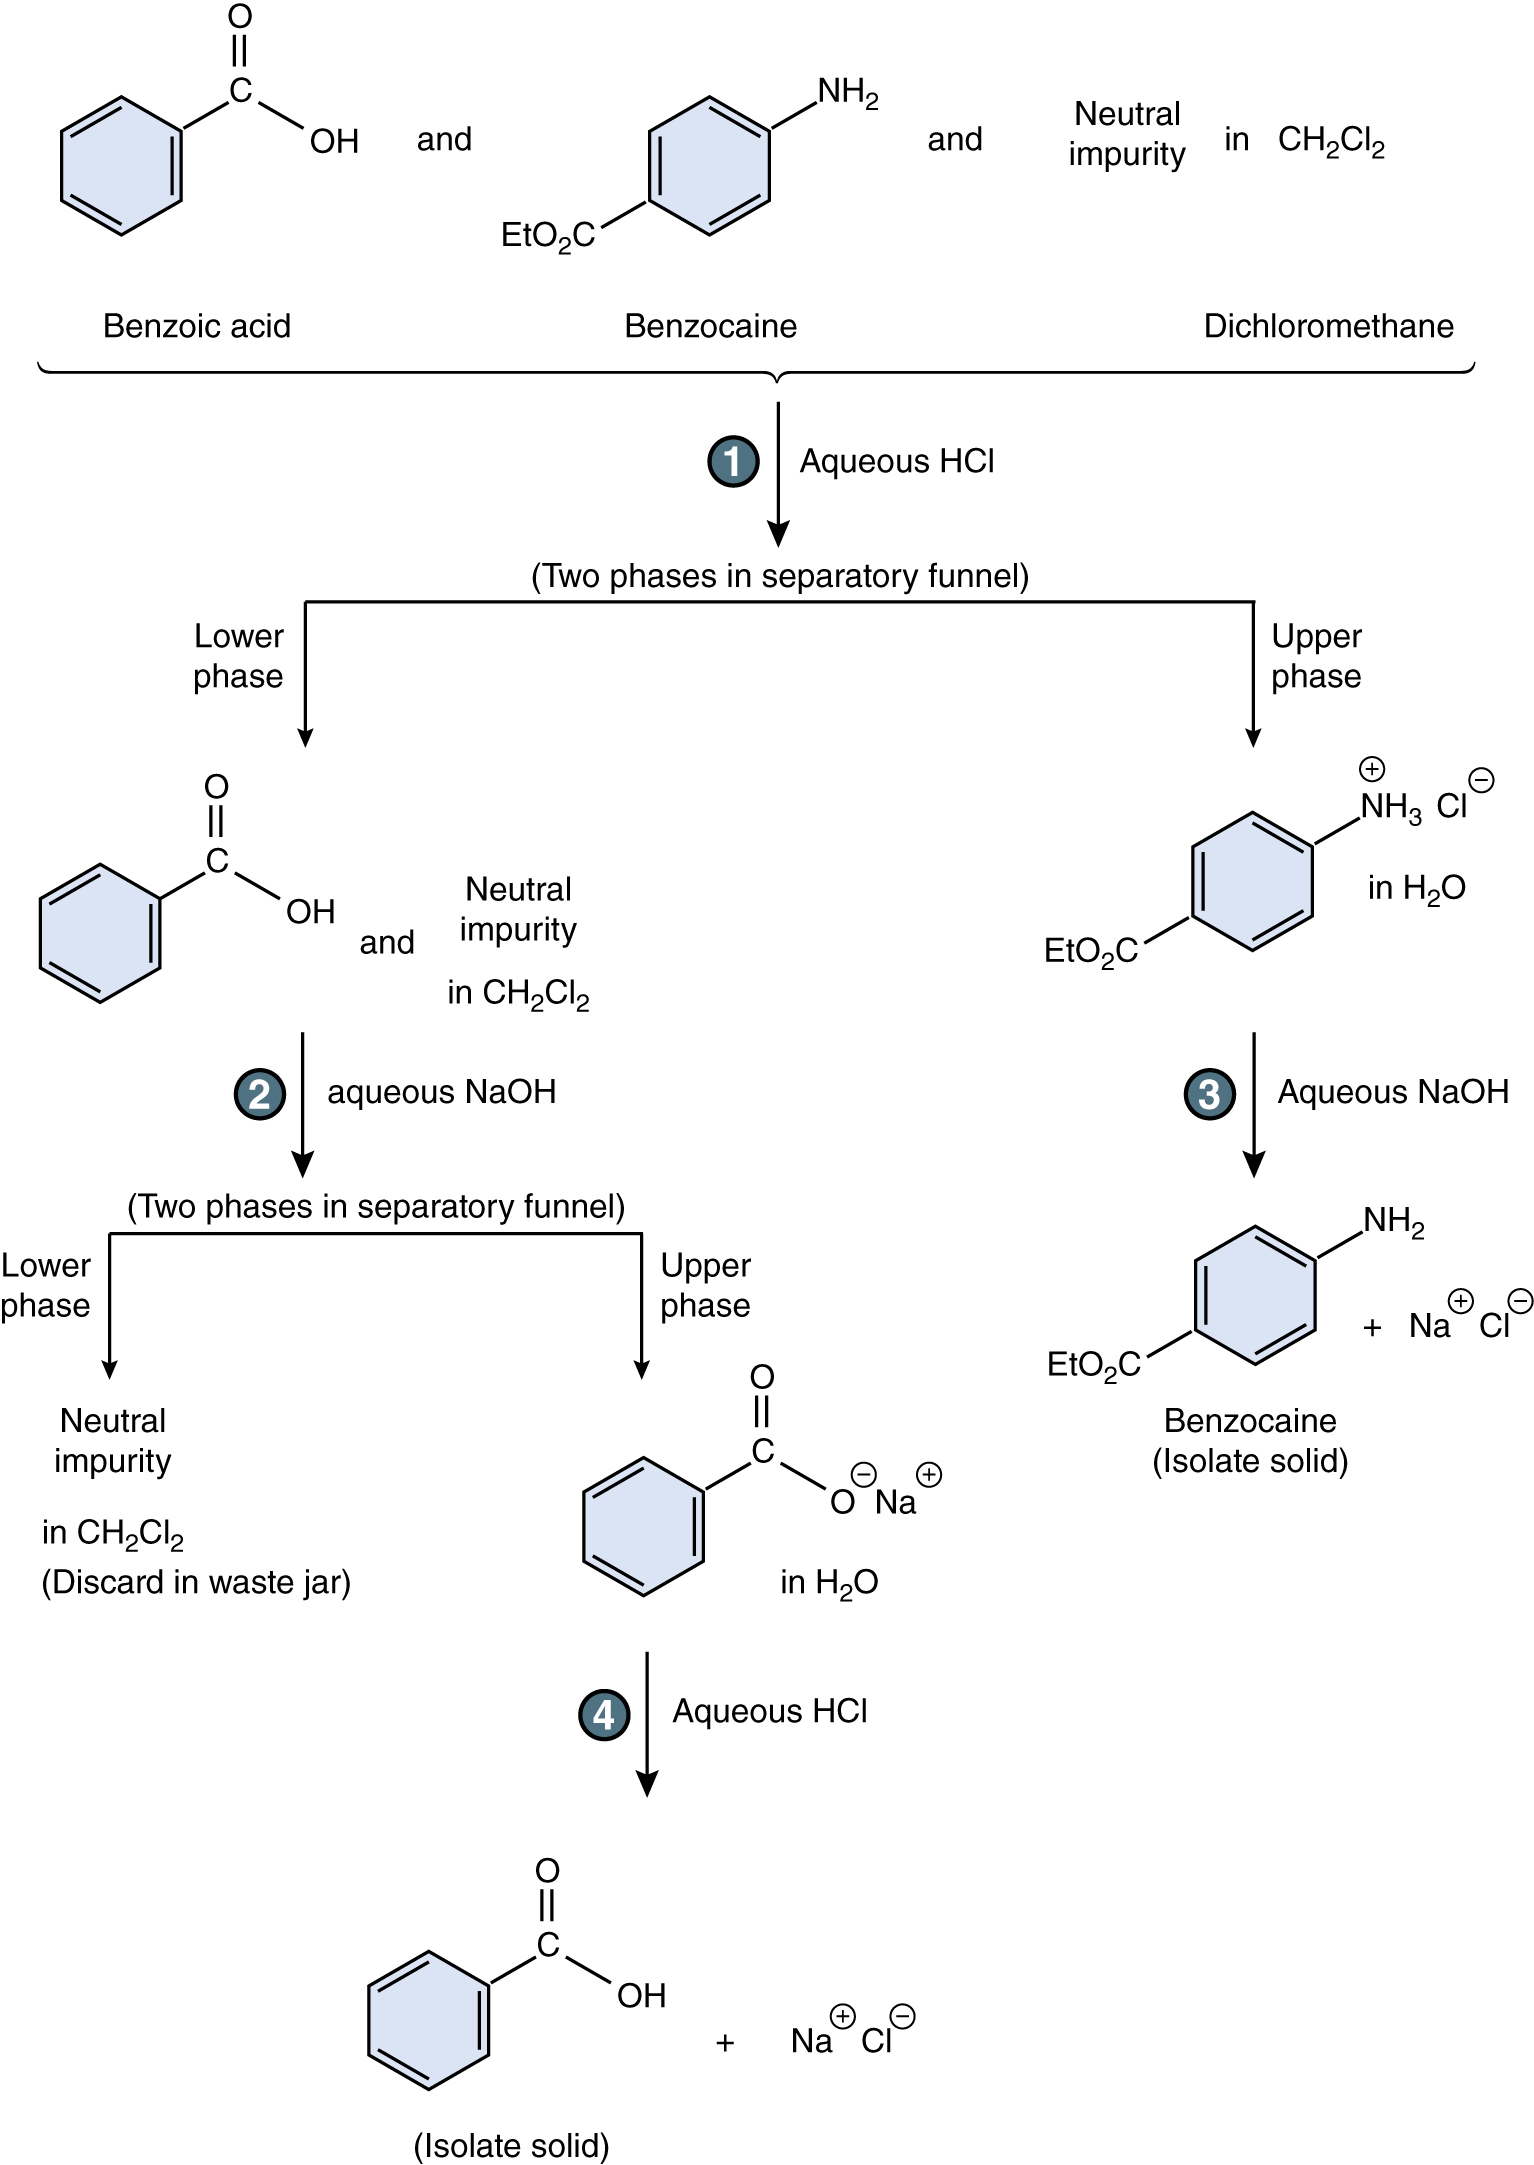 synthesis of benzocaine Synthesis the synthesis of benzocaine is carried out by the acid-catalyzed esterification of 4-aminobenzoic acid with ethanol: in a 5-ml round bottom flask.